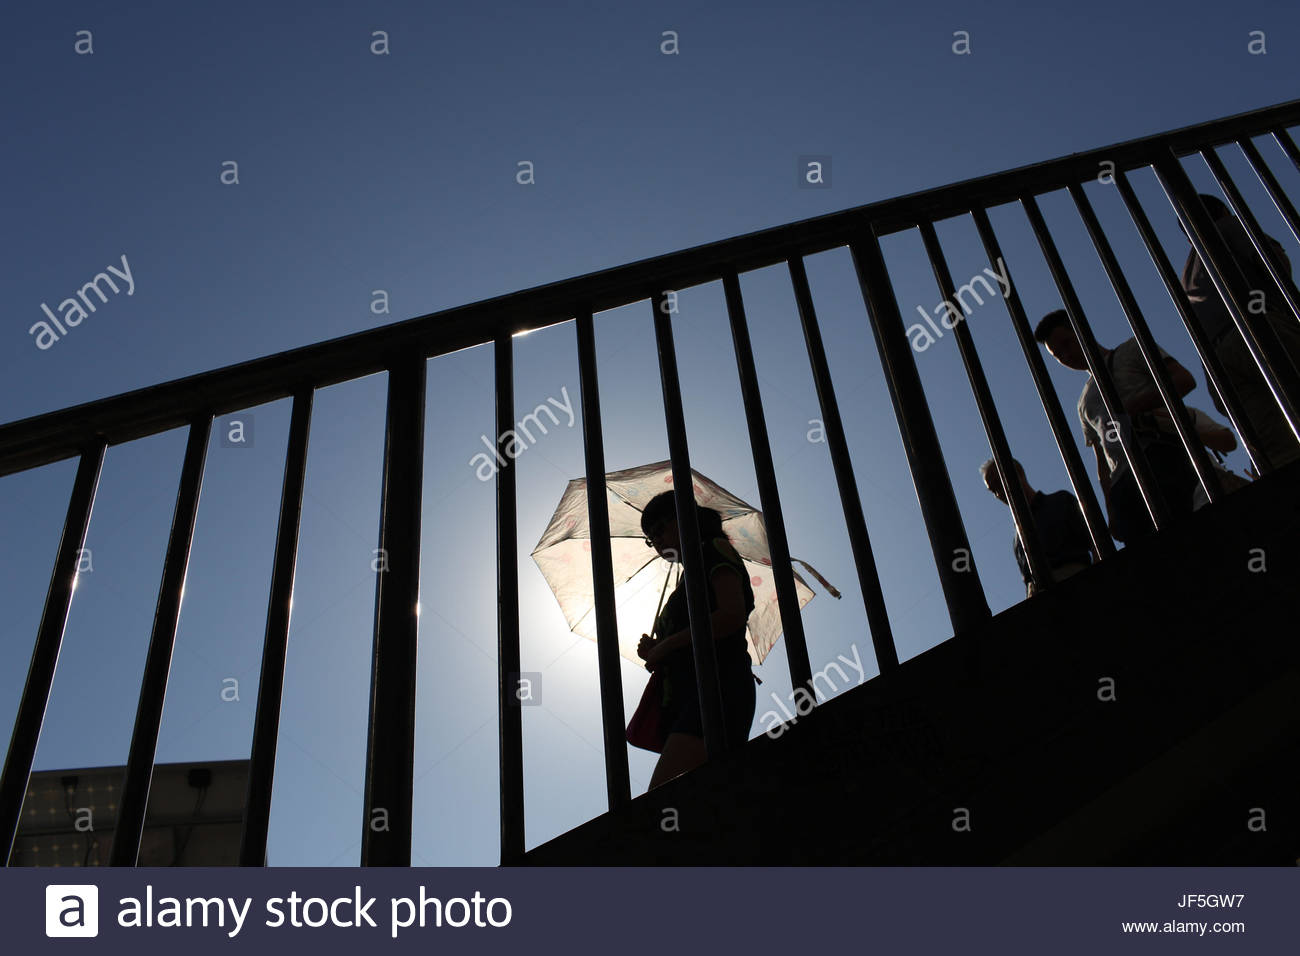 A woman with an umbrella walks down a flight of stairs in Beijing. - Stock Image